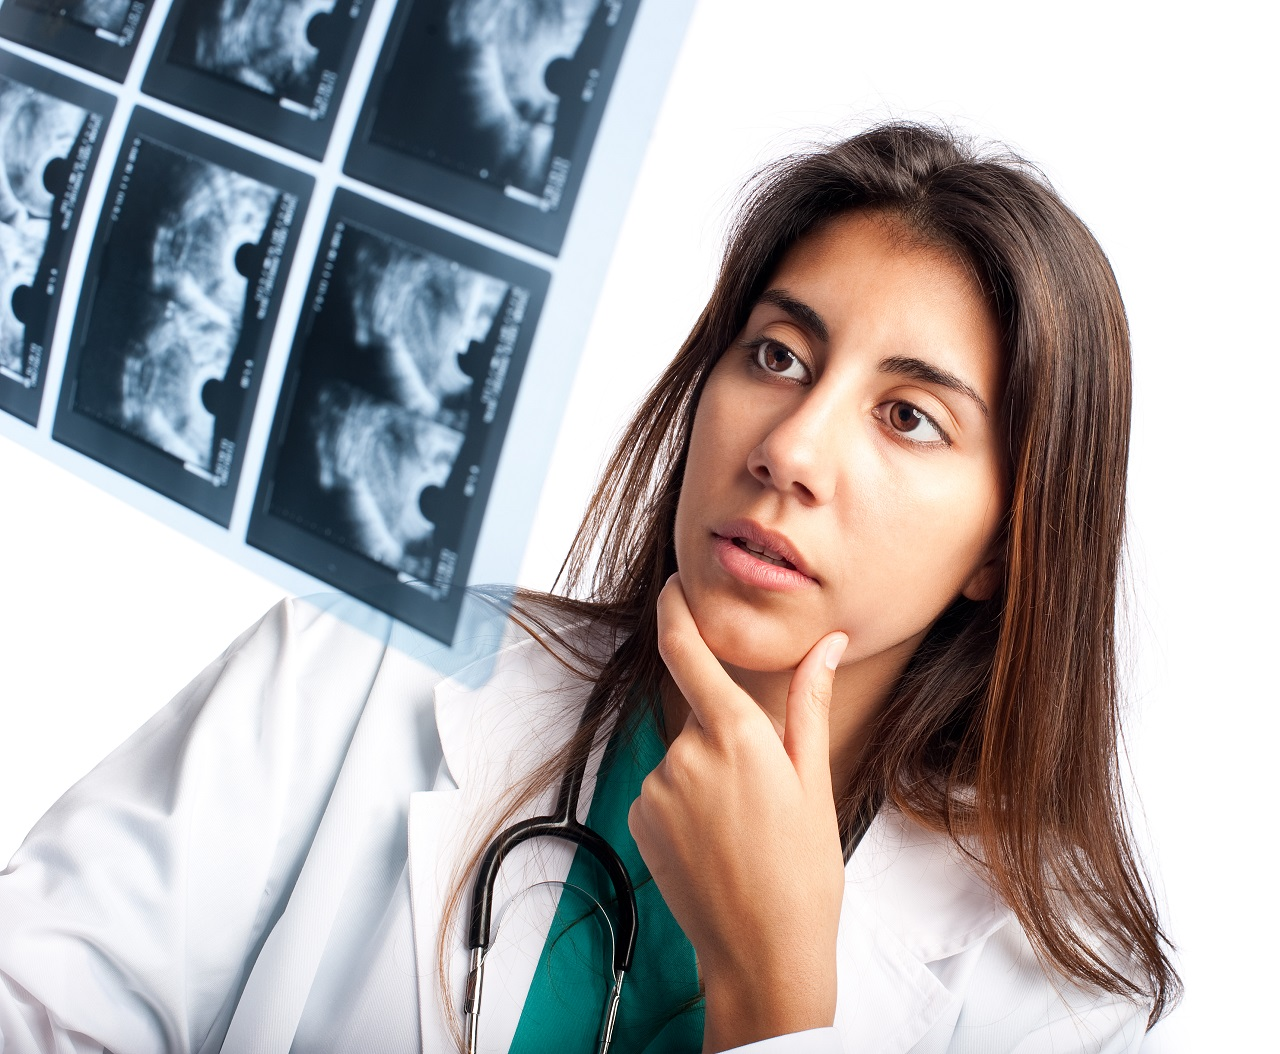 A doctor looking at a breast ultrasound